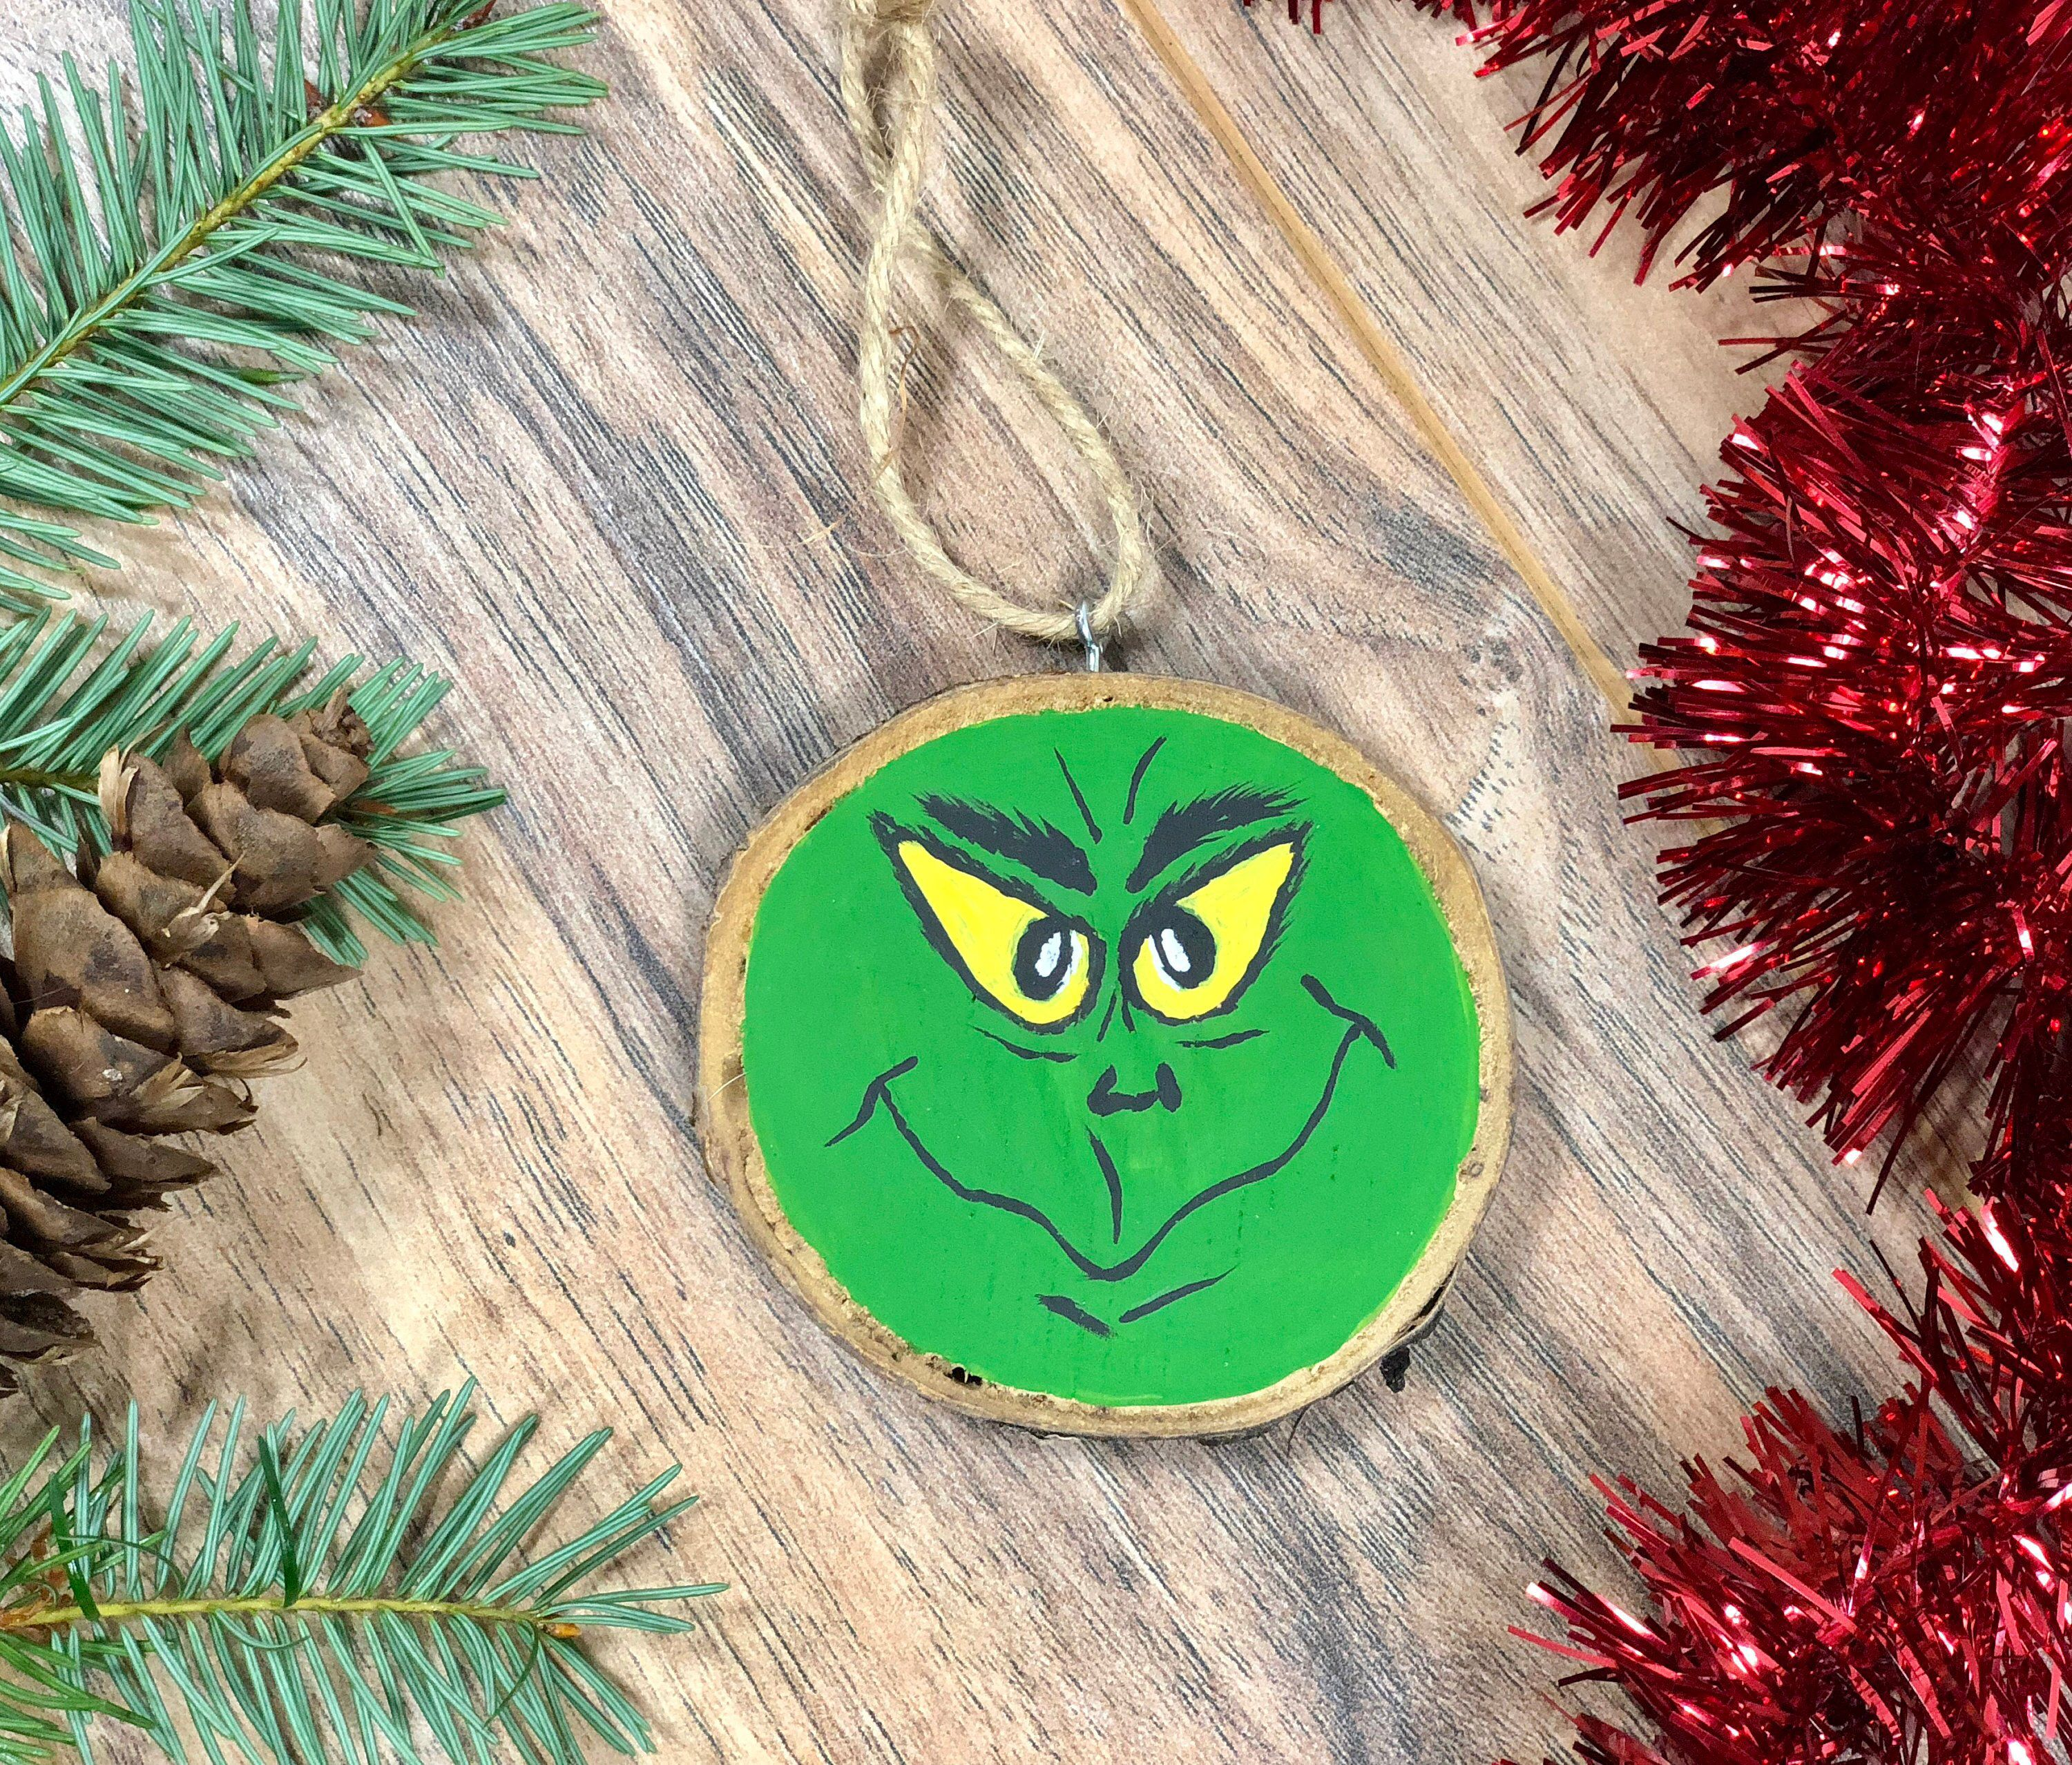 Excited To Share The Latest Addition To My Etsy Shop The Grinch Ornament Wood Slice Christmas Orn Christmas Ornaments Rustic Ornaments Christmas Decorations